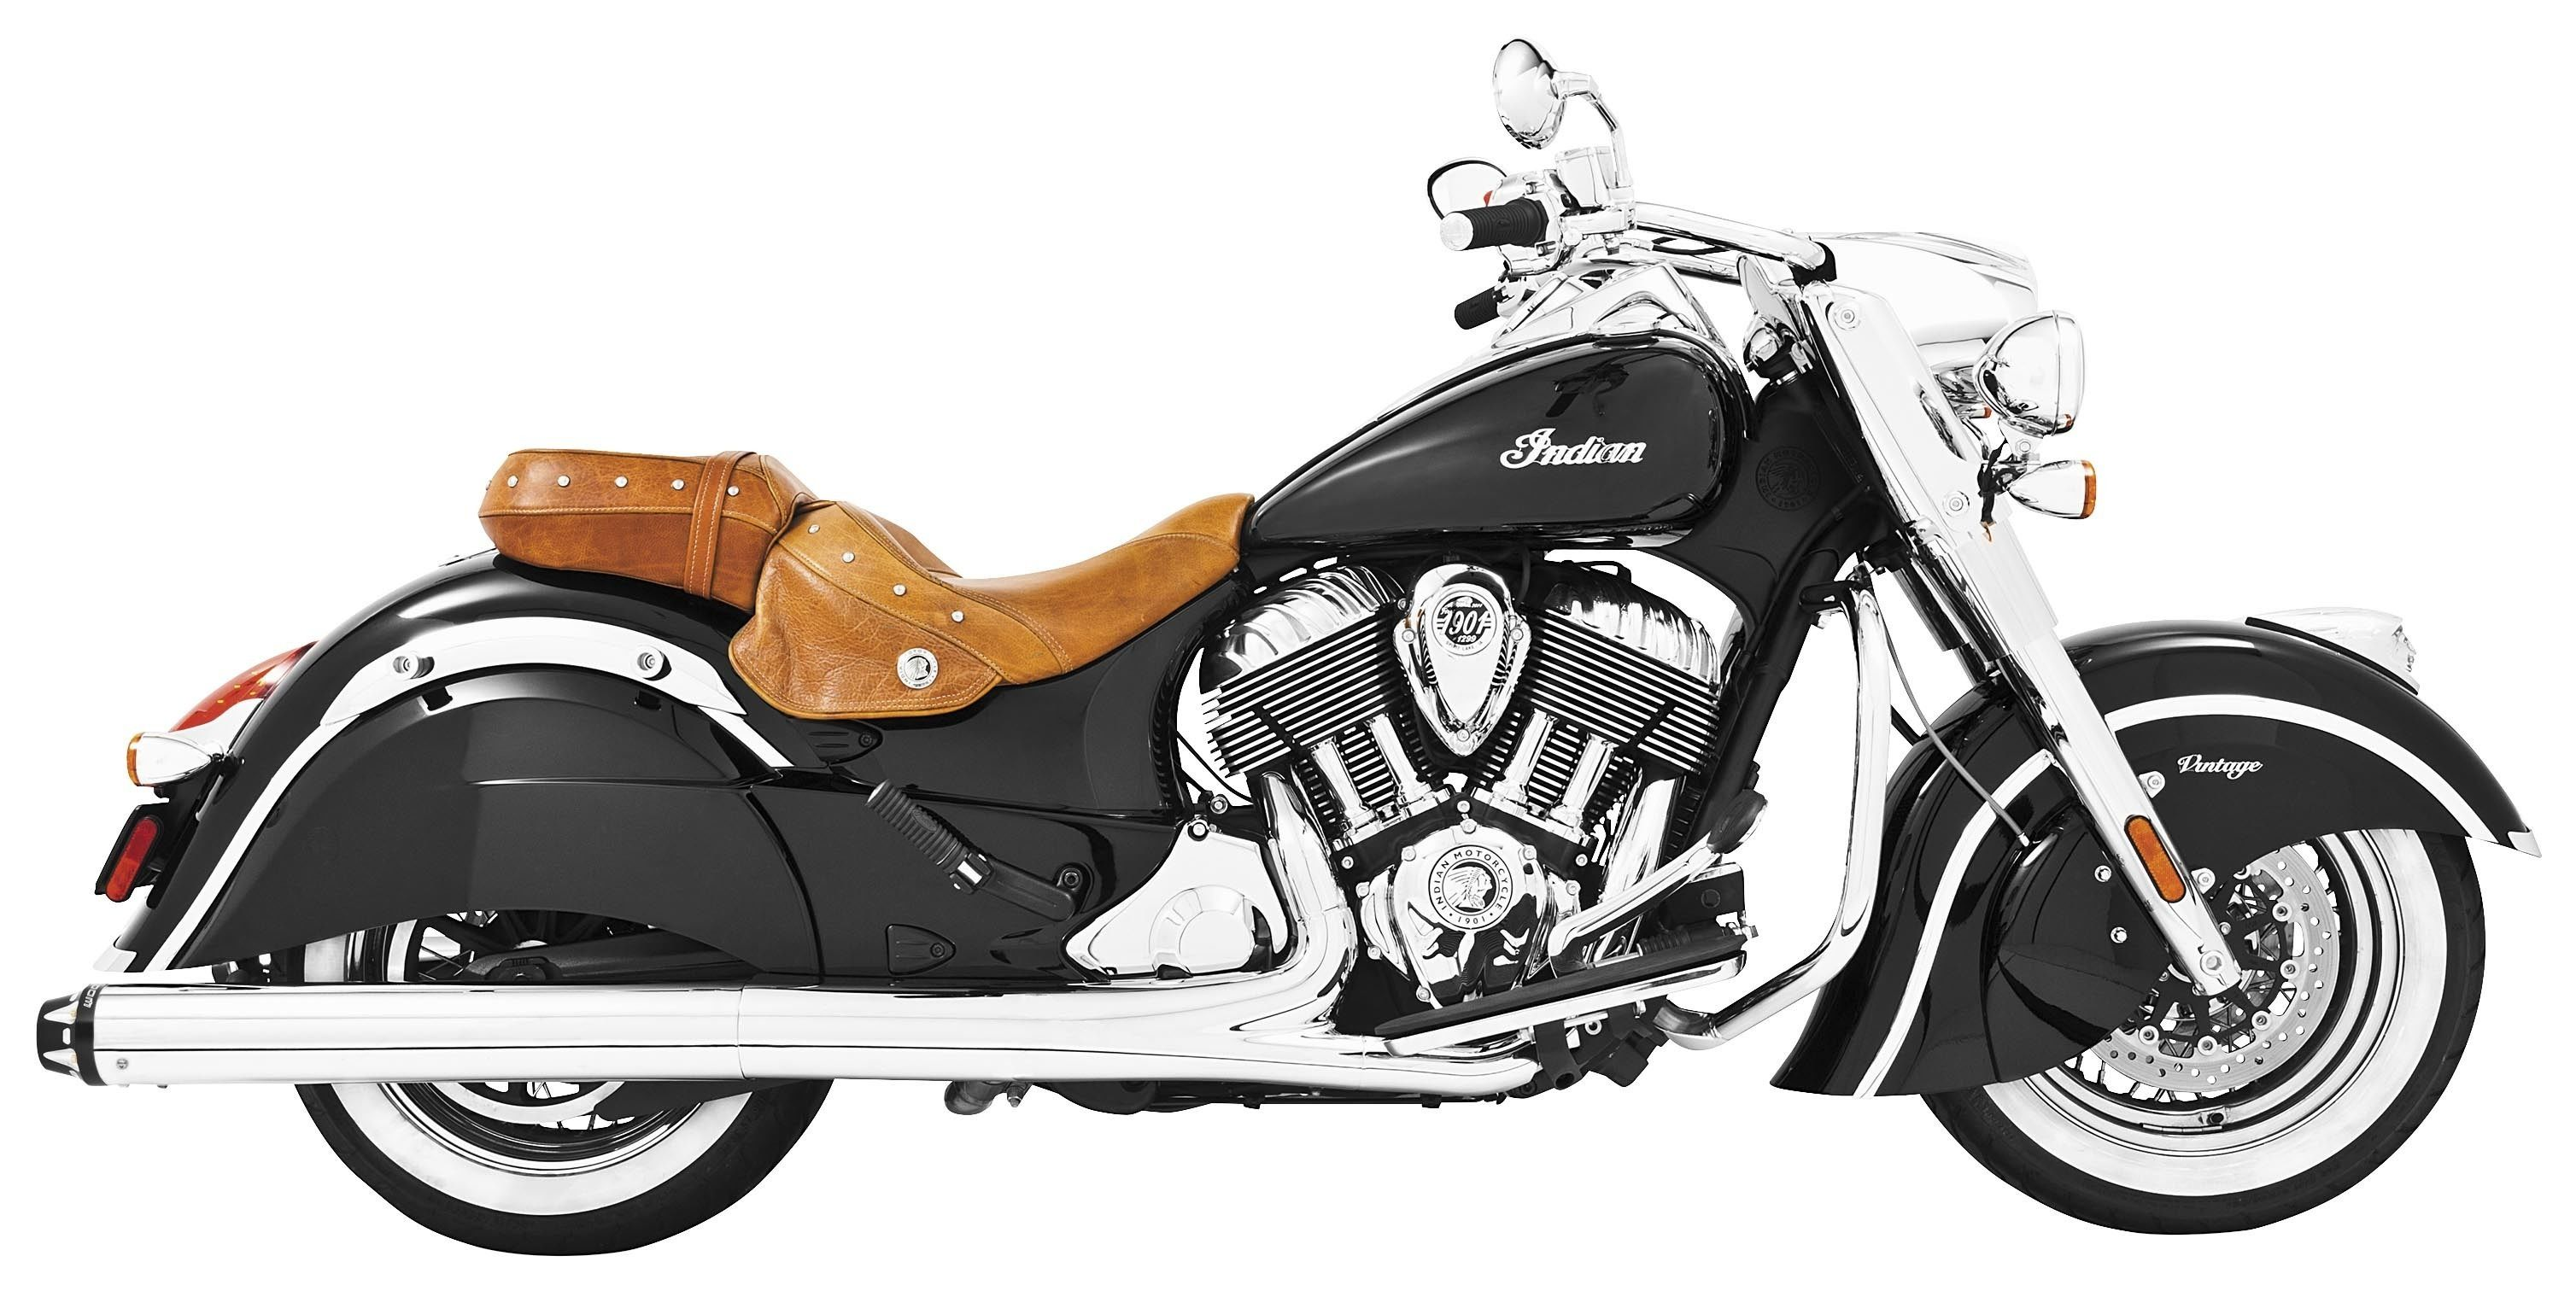 freedom performance 4 5 slip on mufflers for indian chief 2014 2018 10 off revzilla. Black Bedroom Furniture Sets. Home Design Ideas